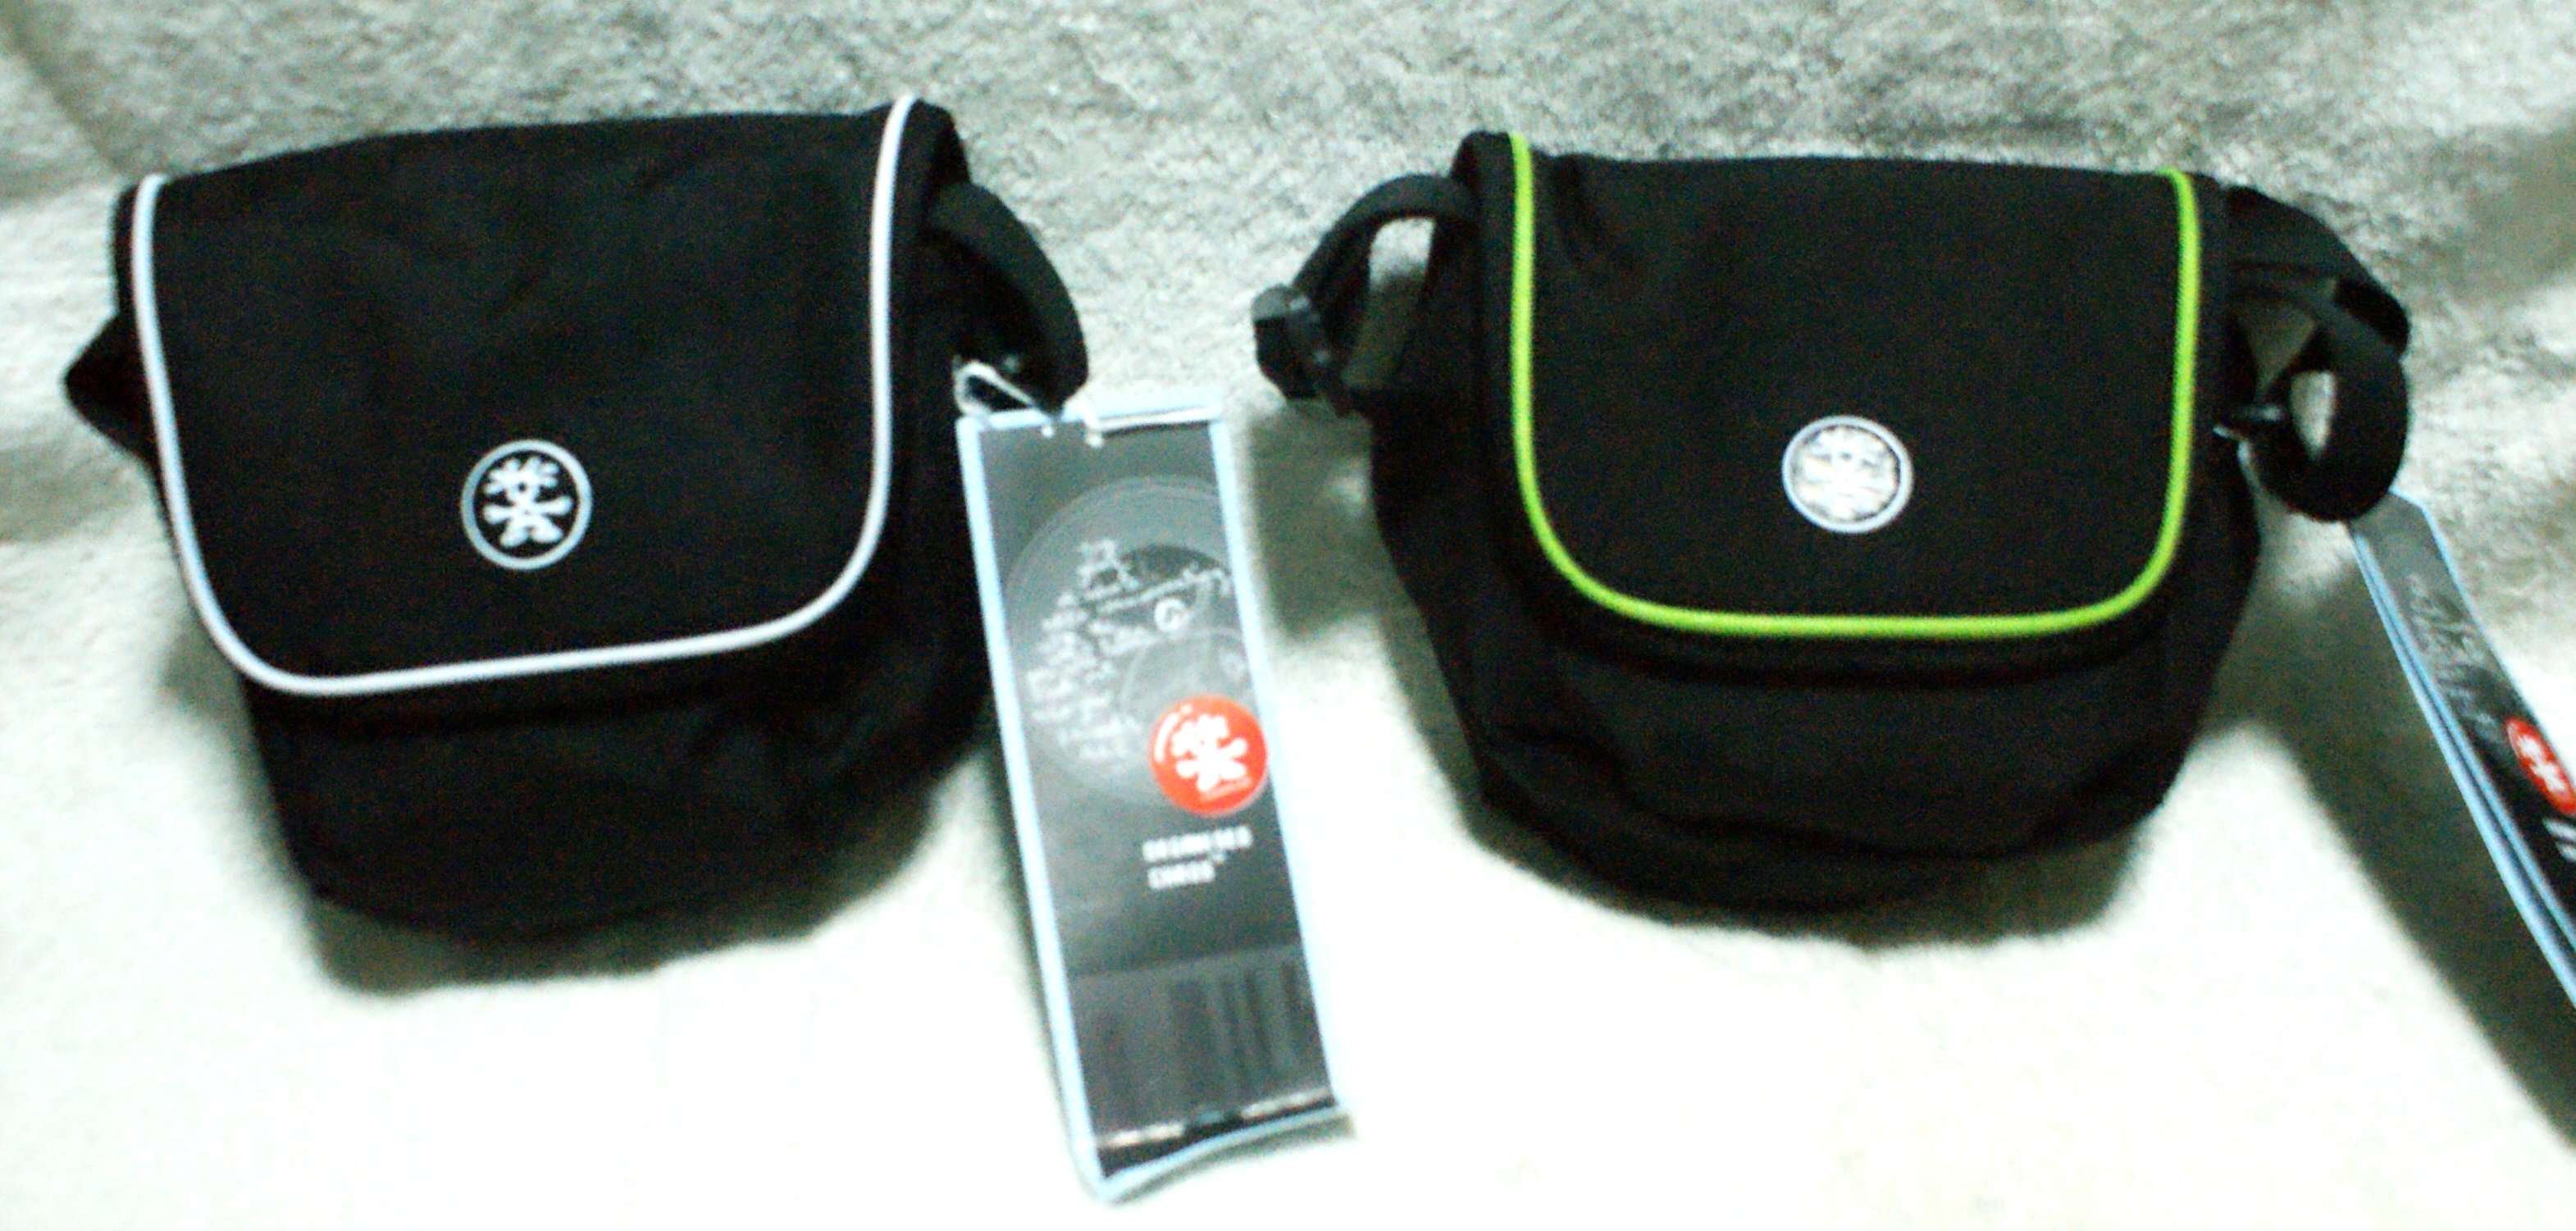 FOR SALE: Crumpler Cupcake 1500 @ $60 only hurry